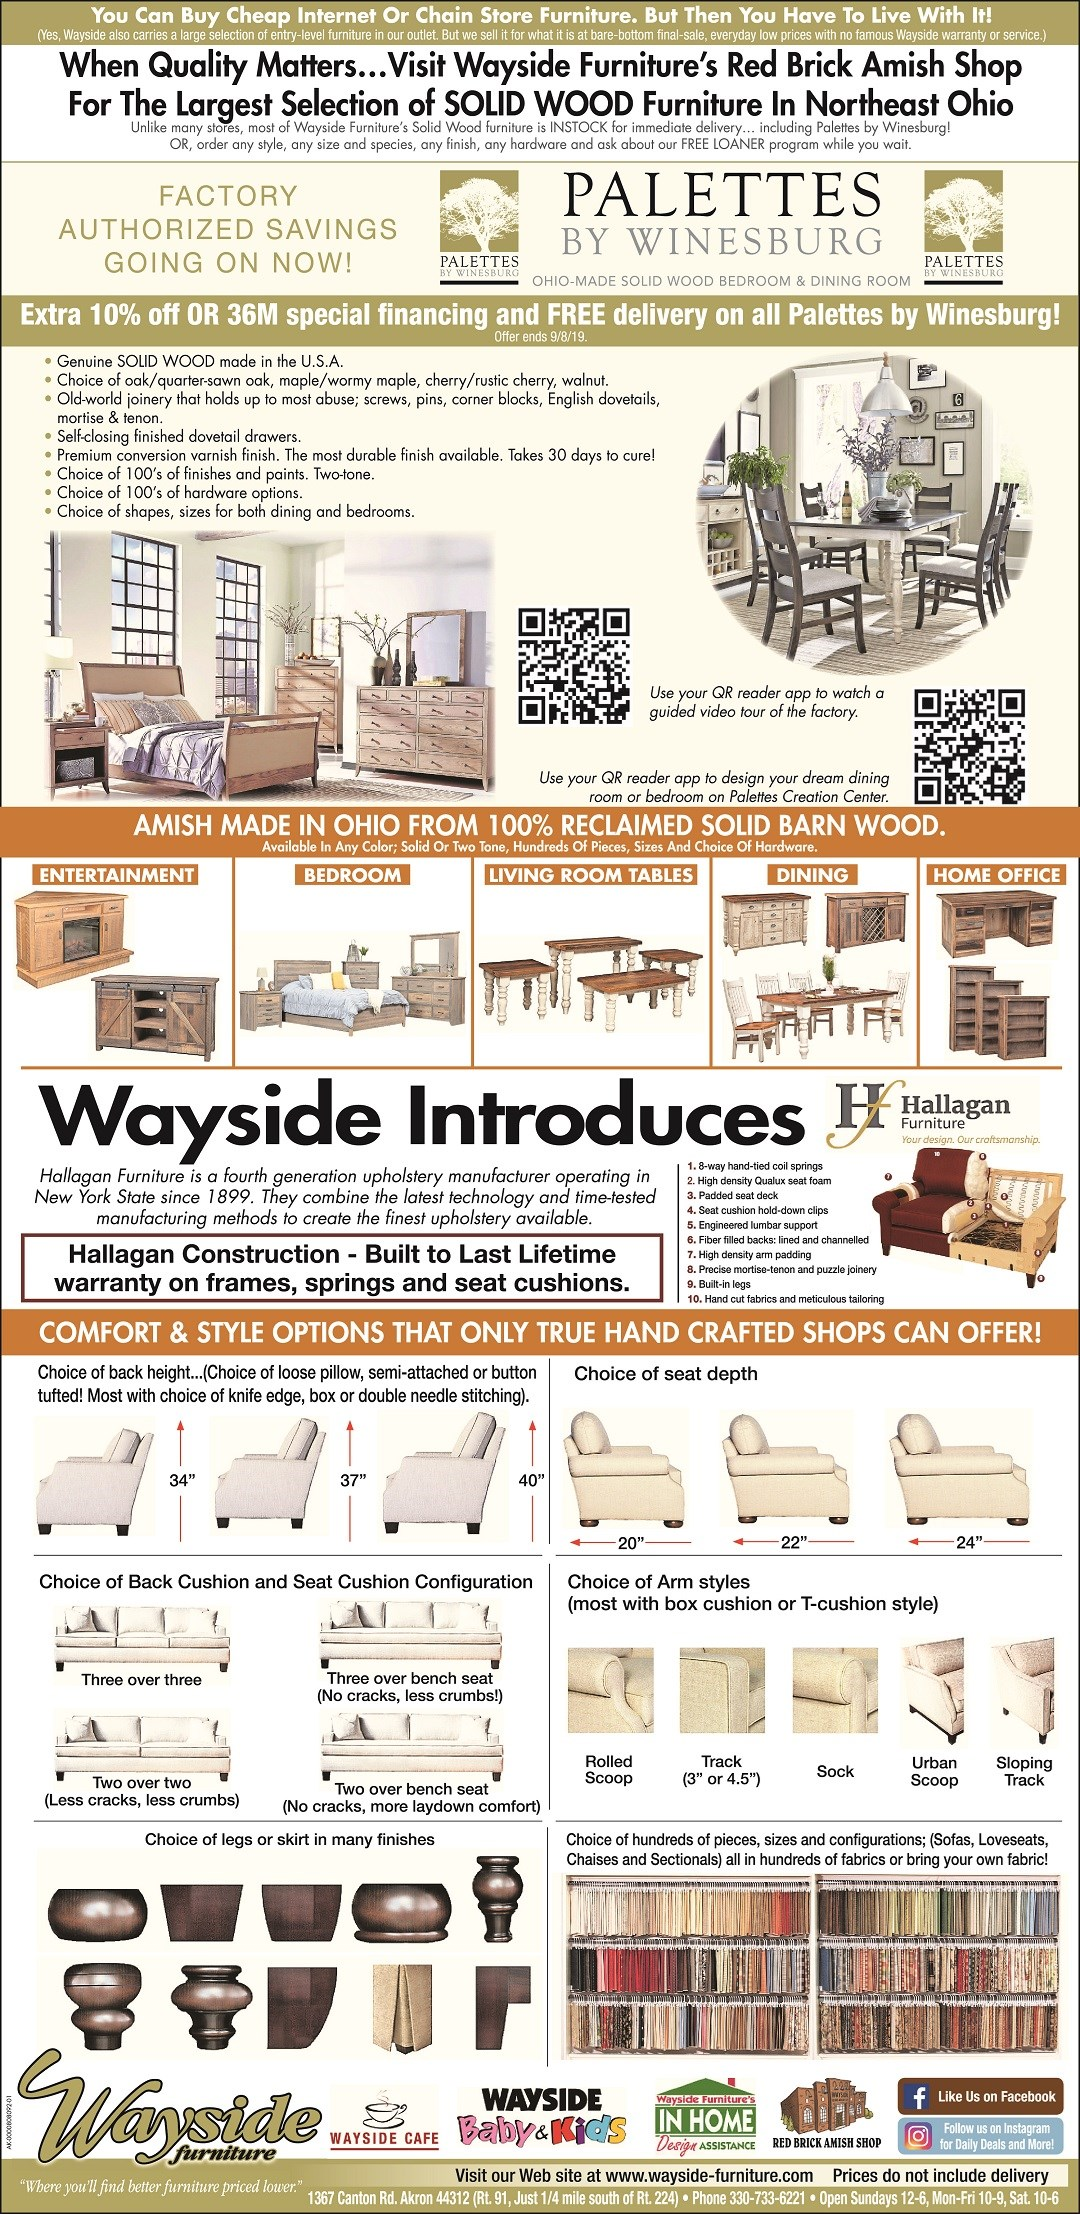 Palettes by Winesburg Factory Authorized Event. Extra 10% off, plus 36 months special financing and free delivery on all Palettes by Winesburg. Sale ends 9/8/19.  Amish made in ohio from 100% reclaimed solid barn wood by Urban Barnwood.  Custom hand crafted upholstery by Hallagan. Choice of back height, seat depth,  back cushion and seat cushion configuration, choice of arm style,leg or skirt, finish and fabric.